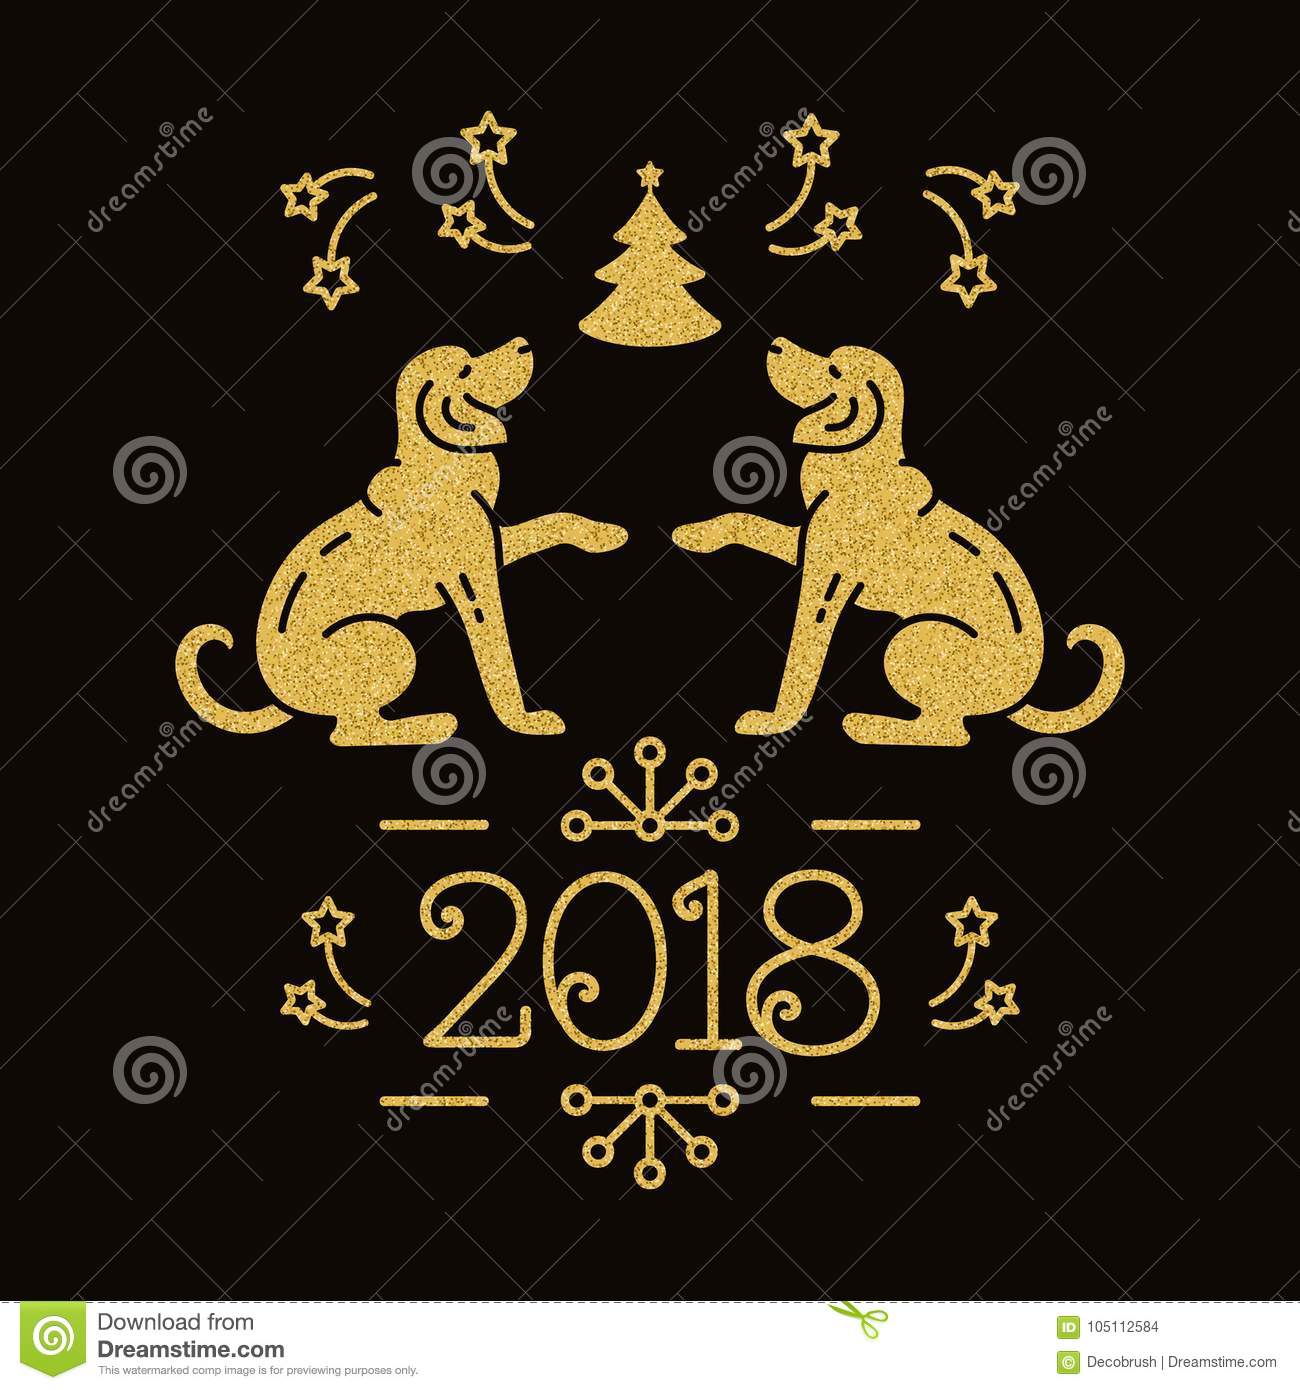 Chinese Zodiac Year Of The Dog 2018 Christmas Card Holiday Golden